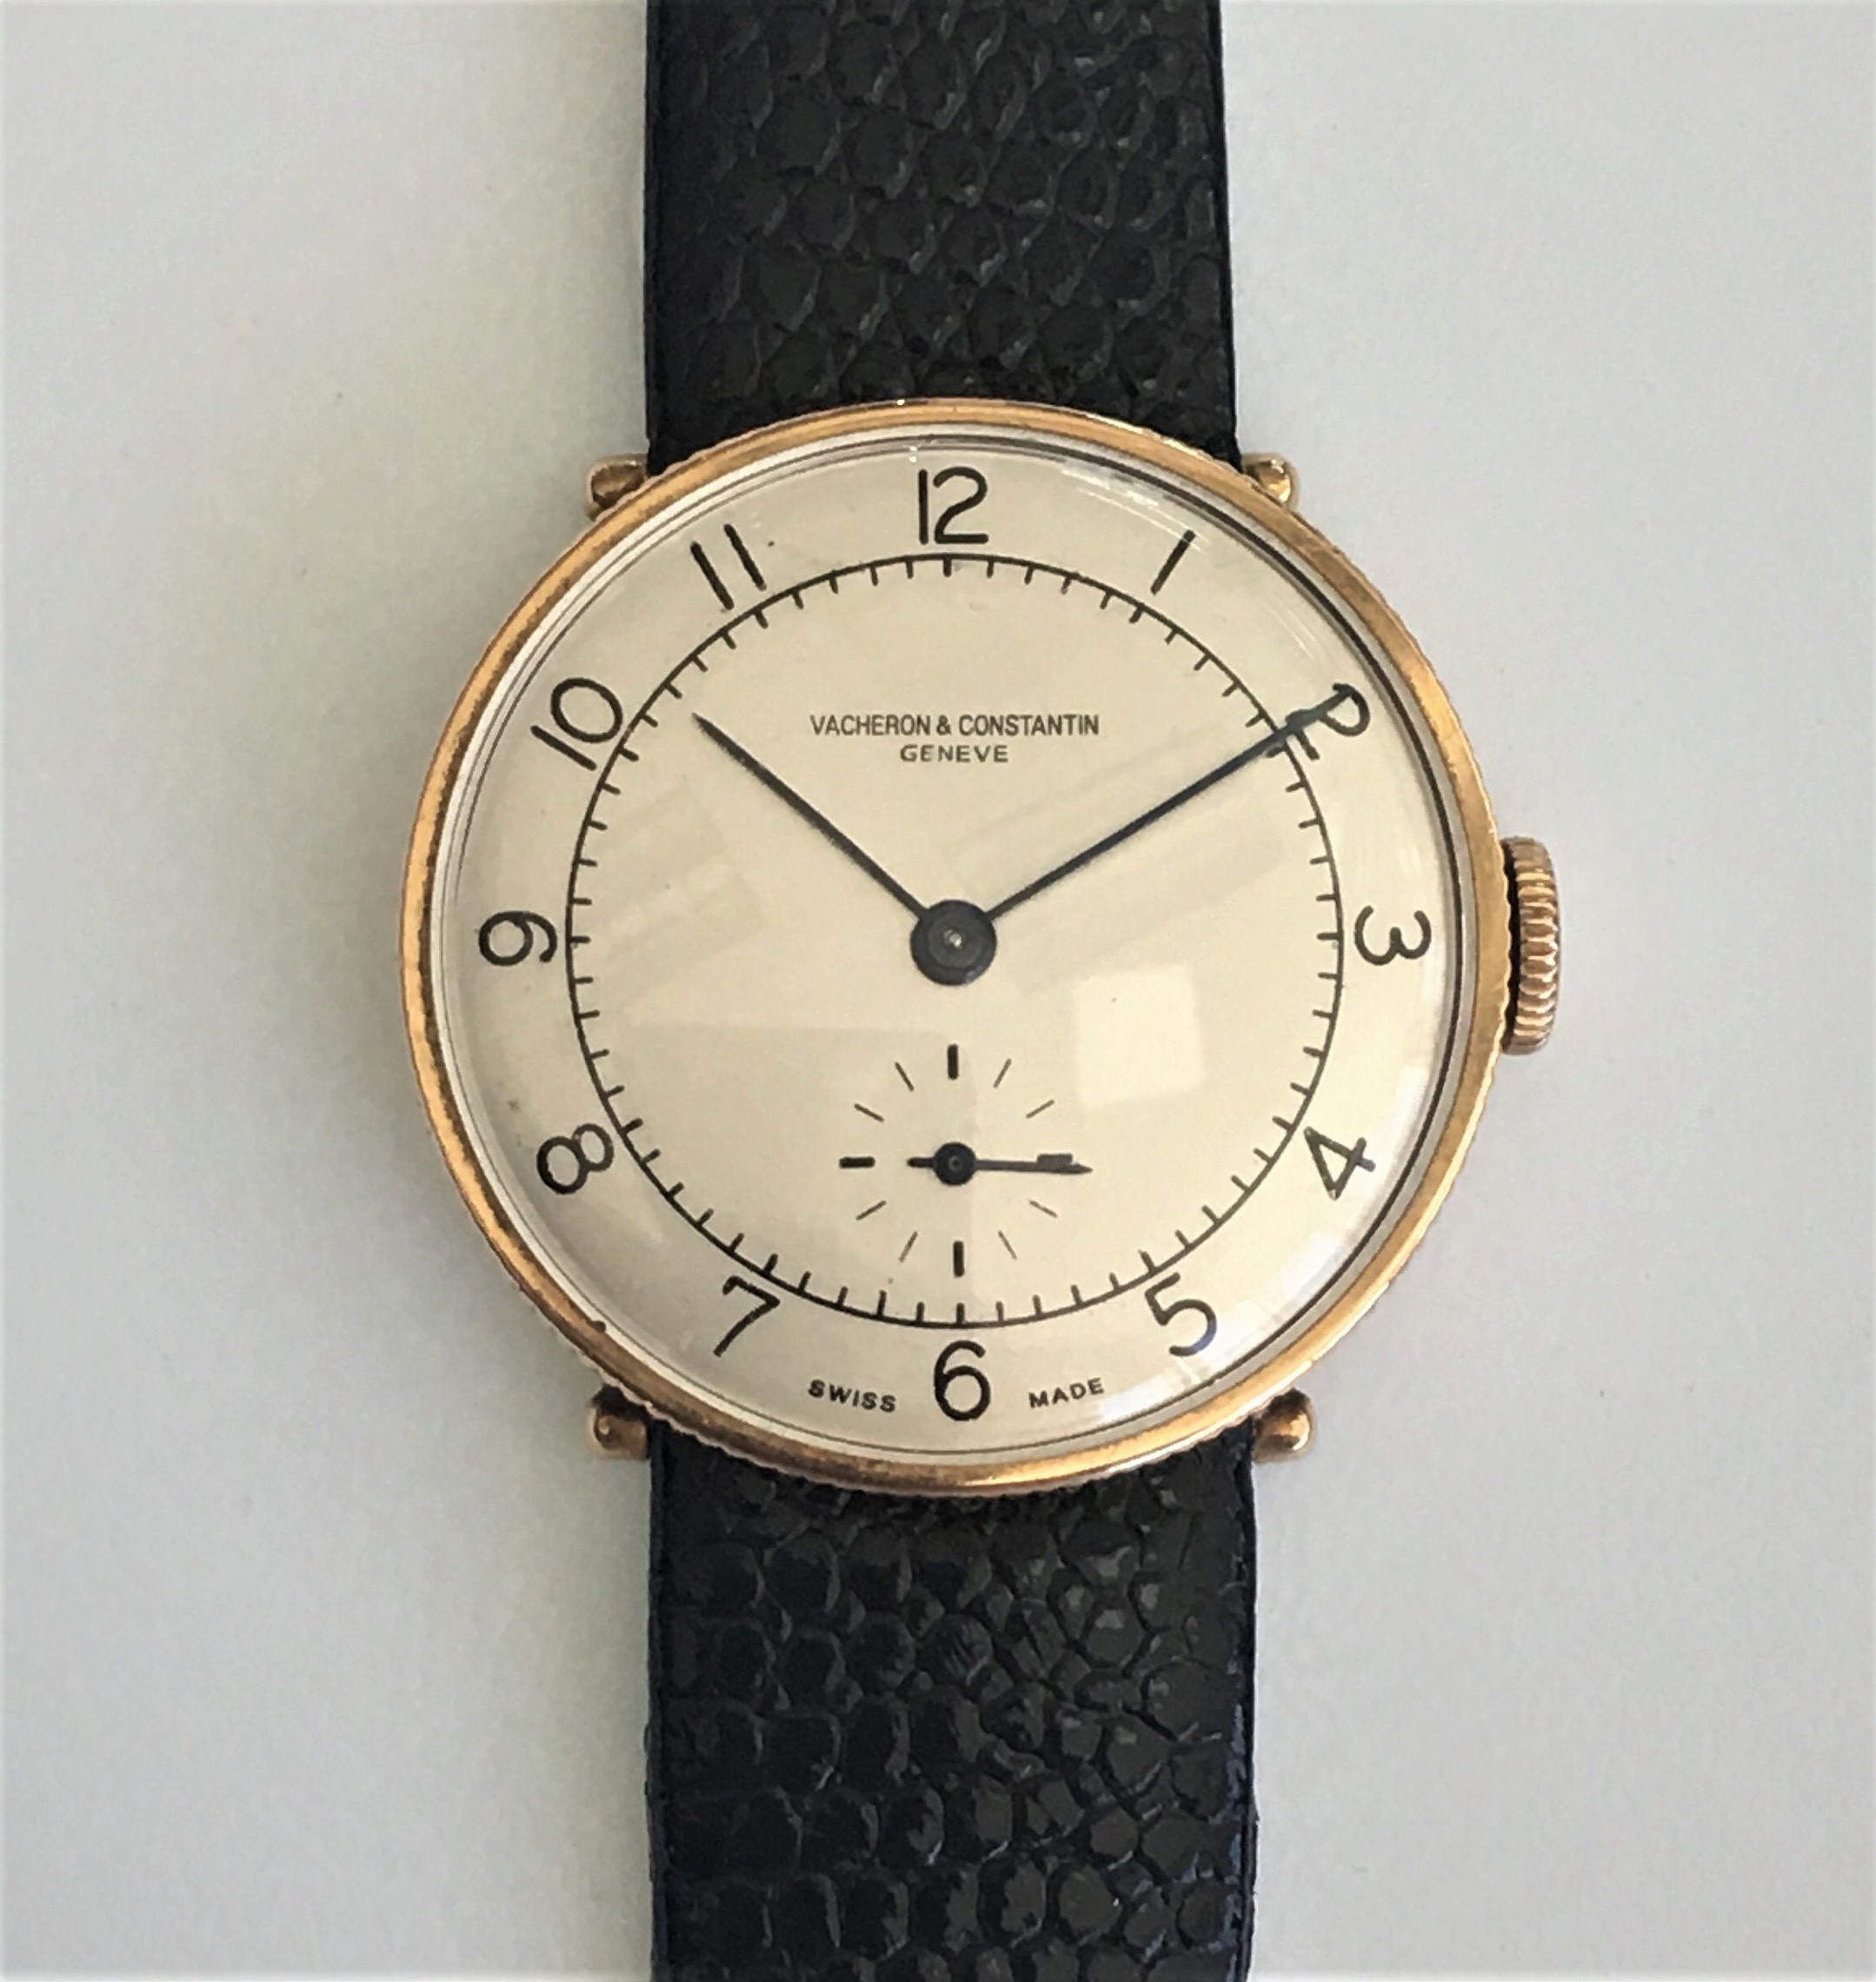 vacheron & constantin geneve .Tampa jewelry store watch repair